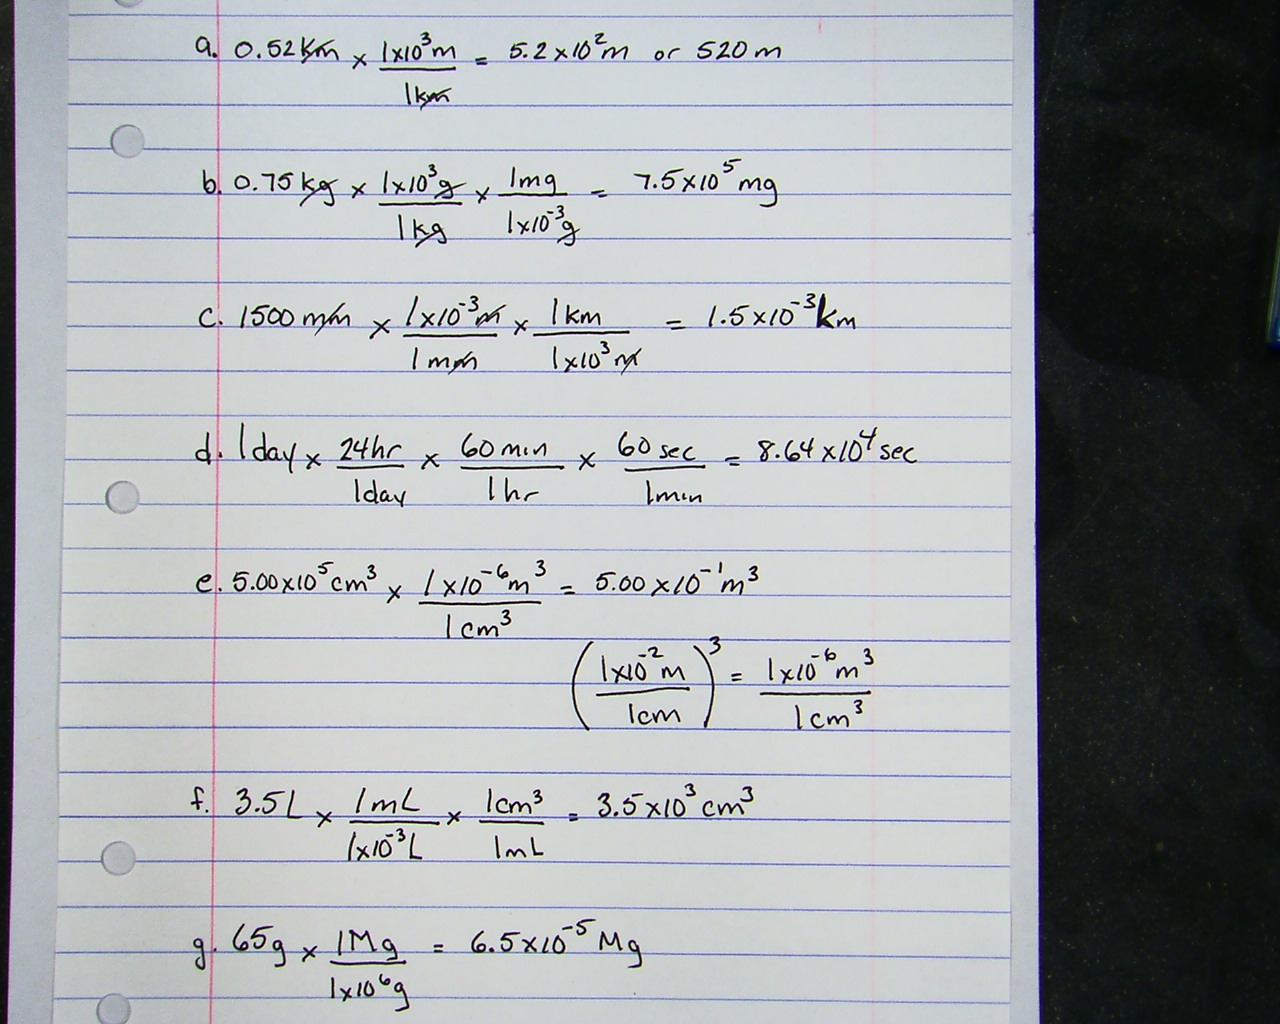 Worksheet Chemistry Conversion Worksheets With Answers baylor scott chemistry conversion worksheet answer sheet a g